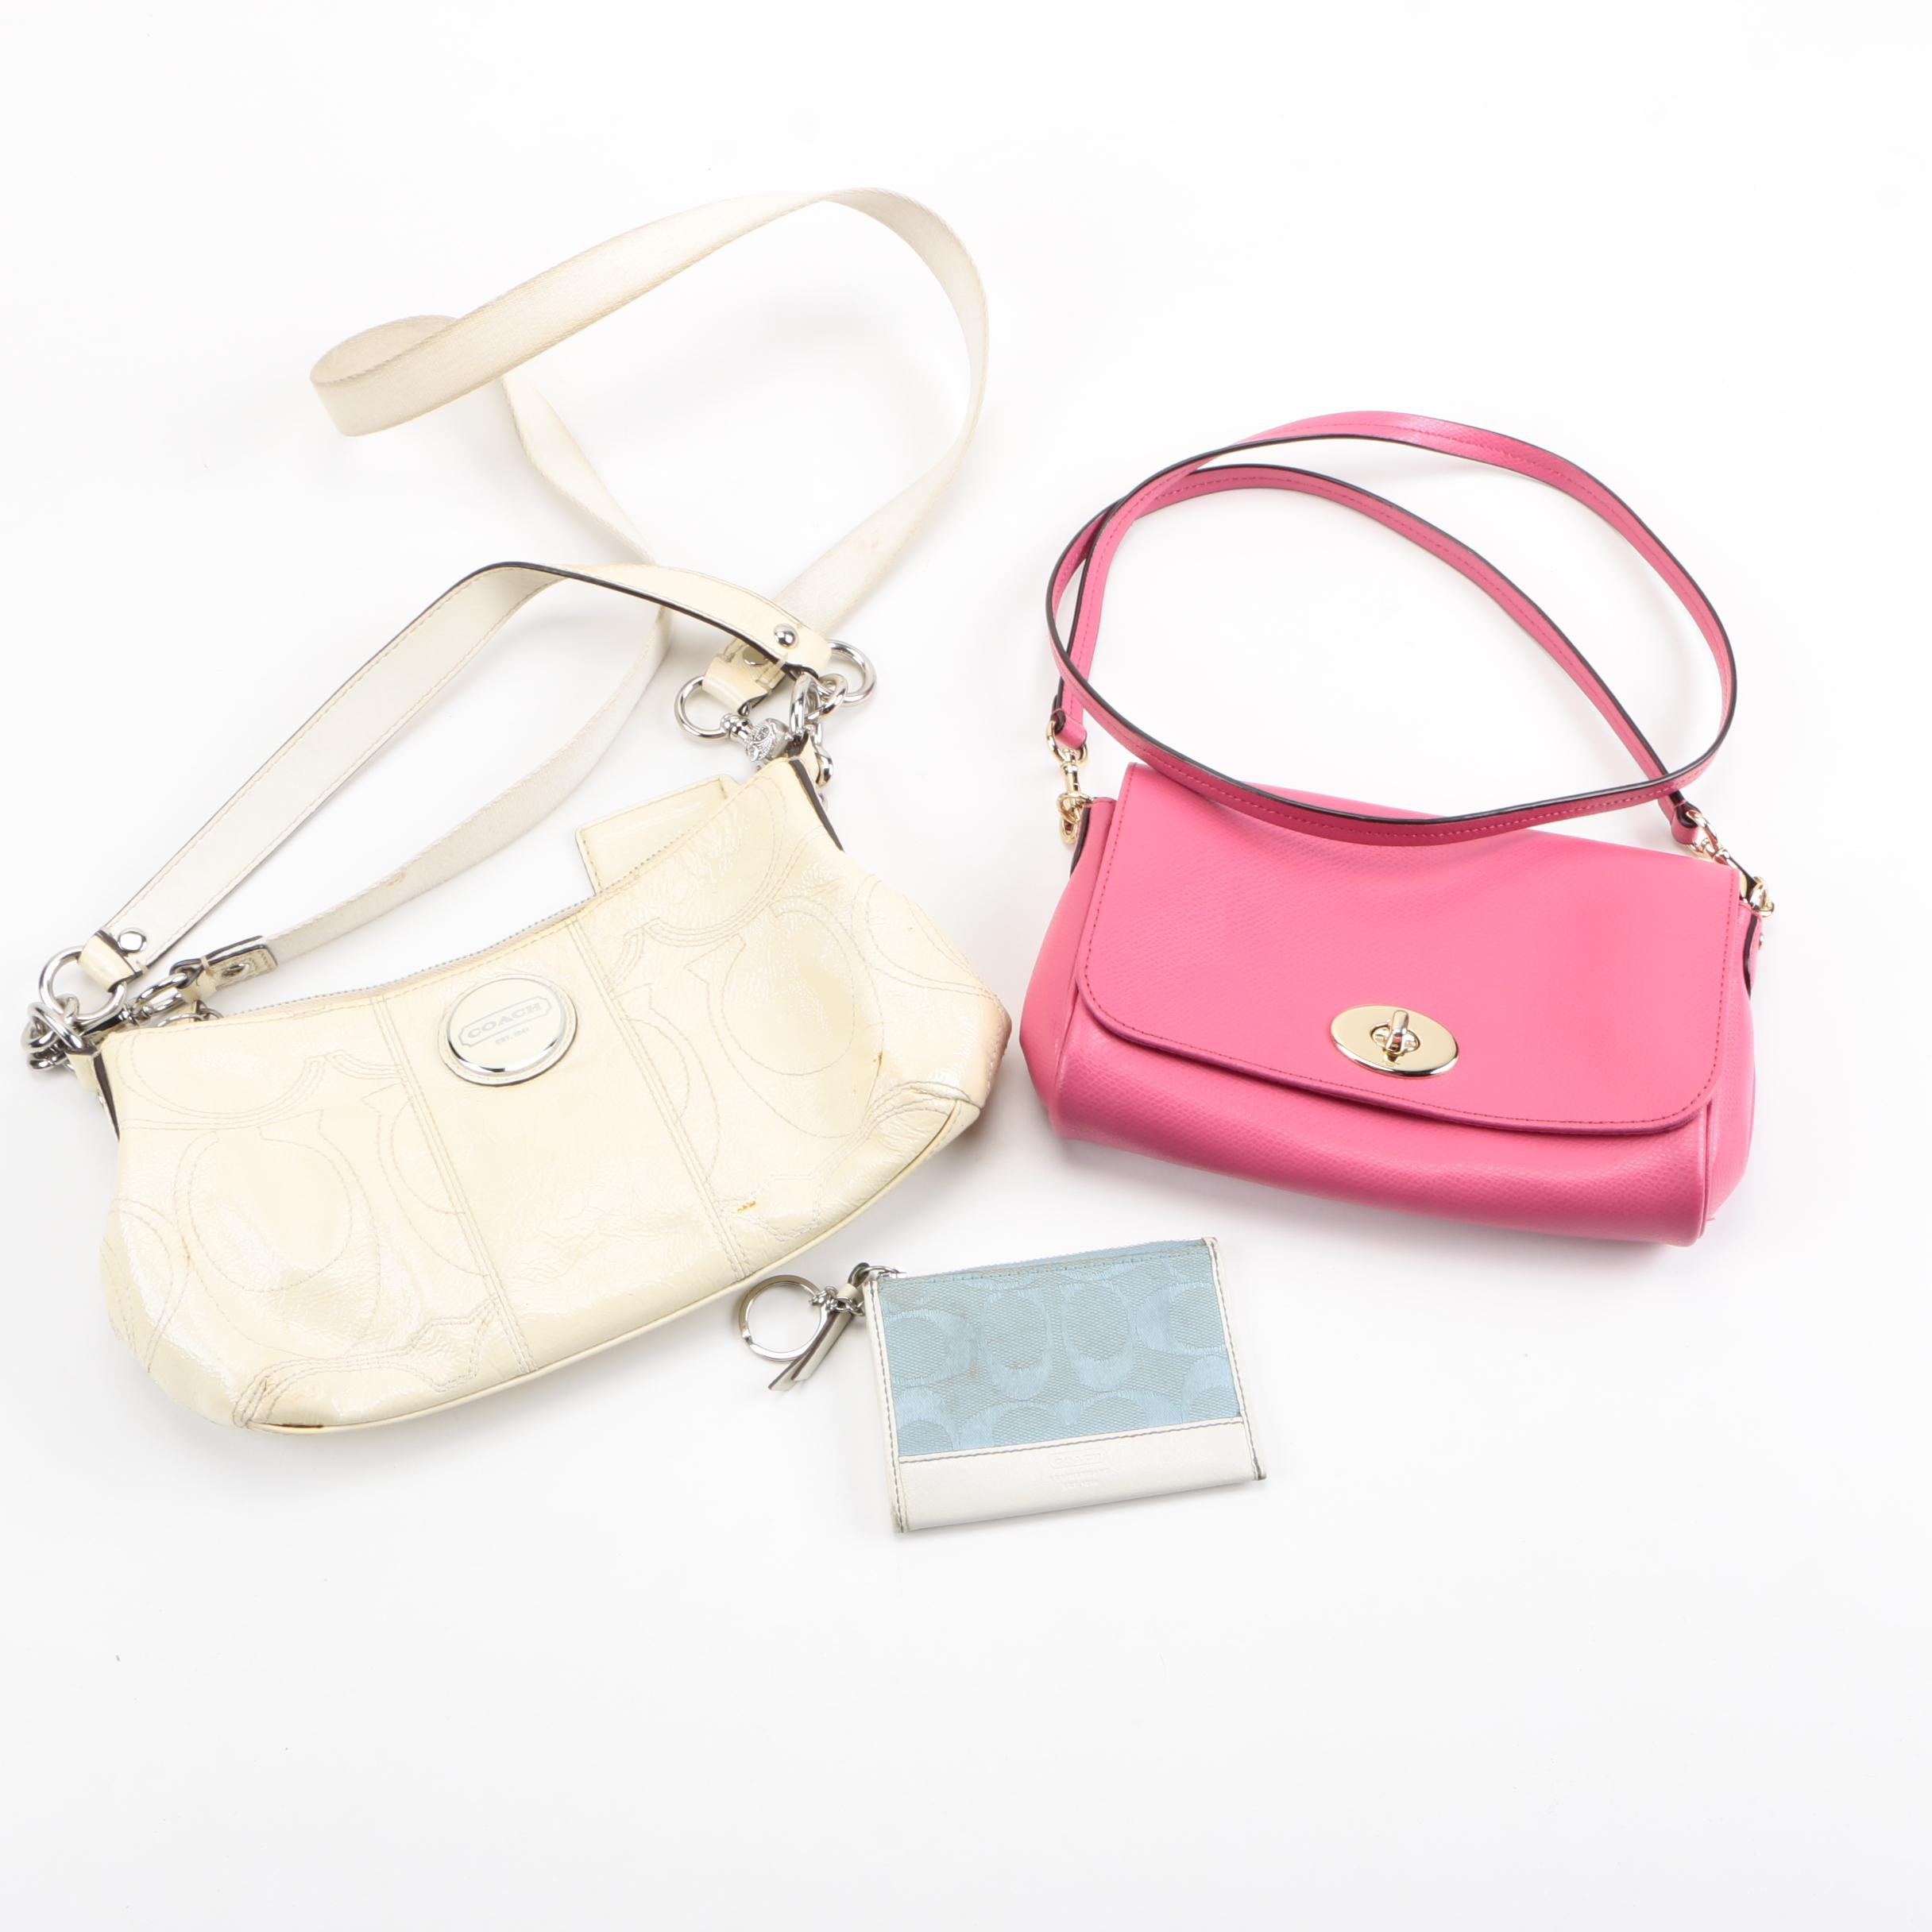 Coach Shoulder Bags and Coin Purse